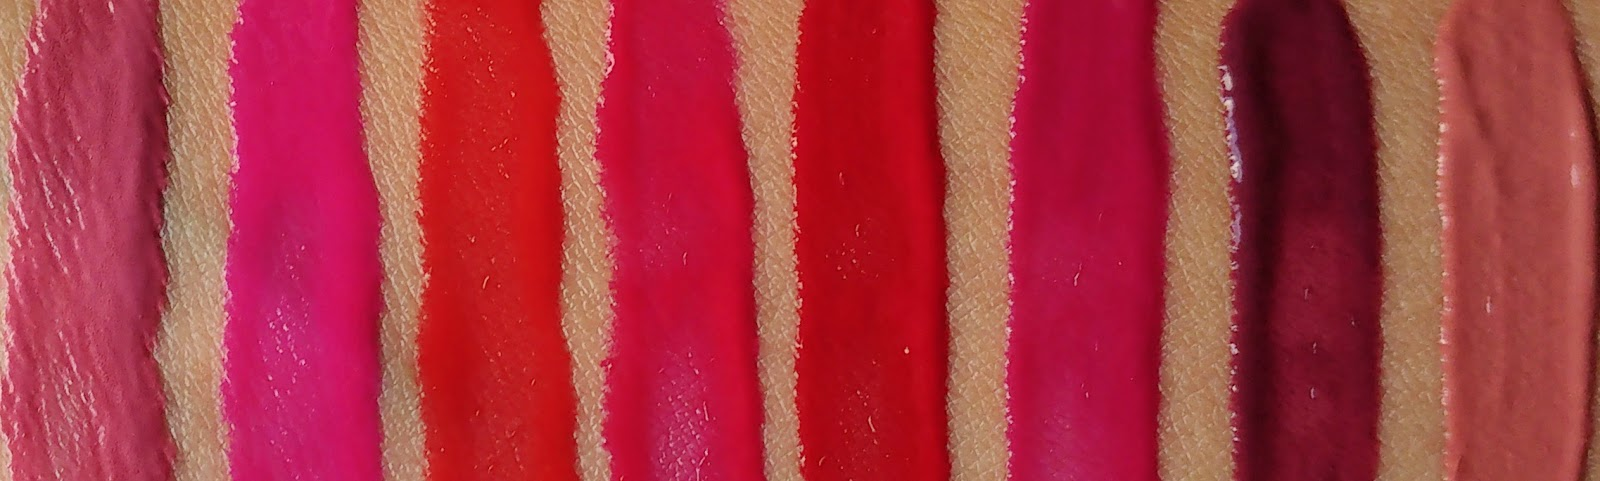 Maybelline Vivid Matte Liquid Swatched and Reviewed